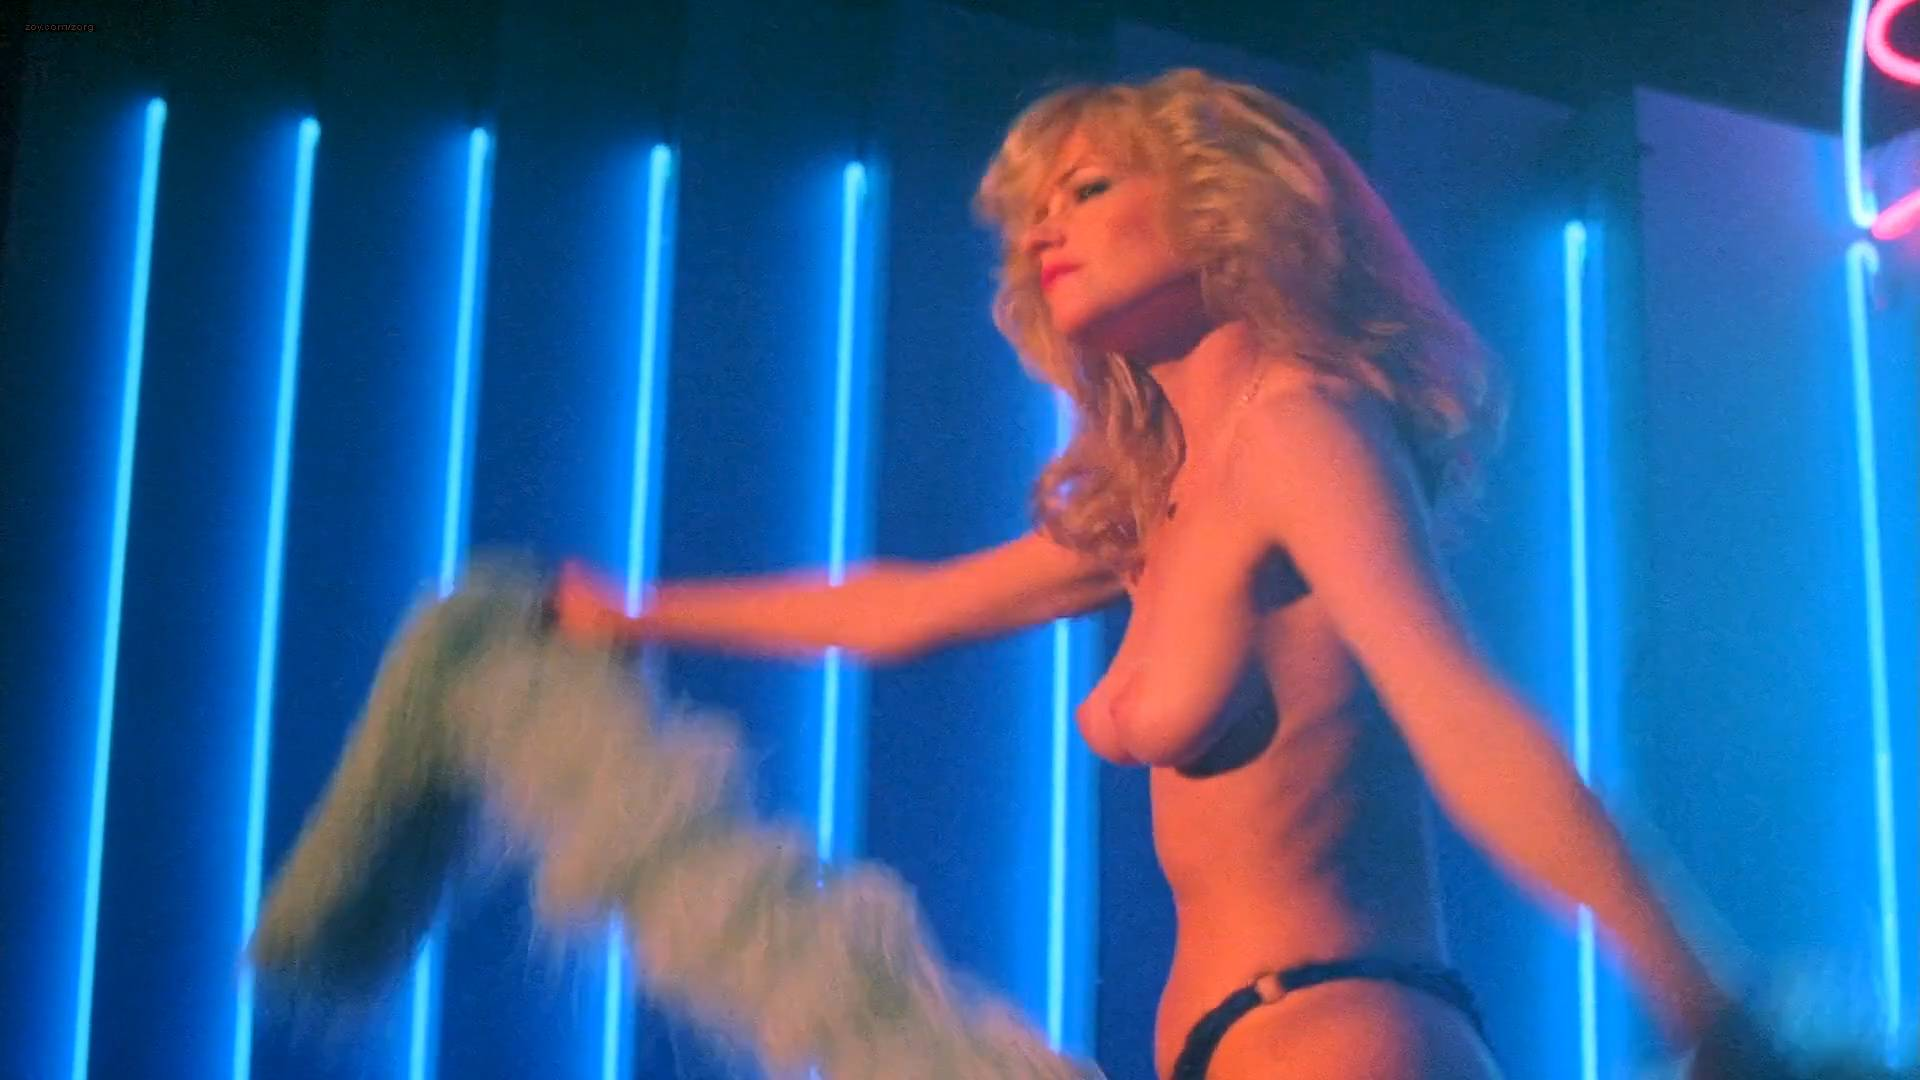 Melanie griffith nude pictures